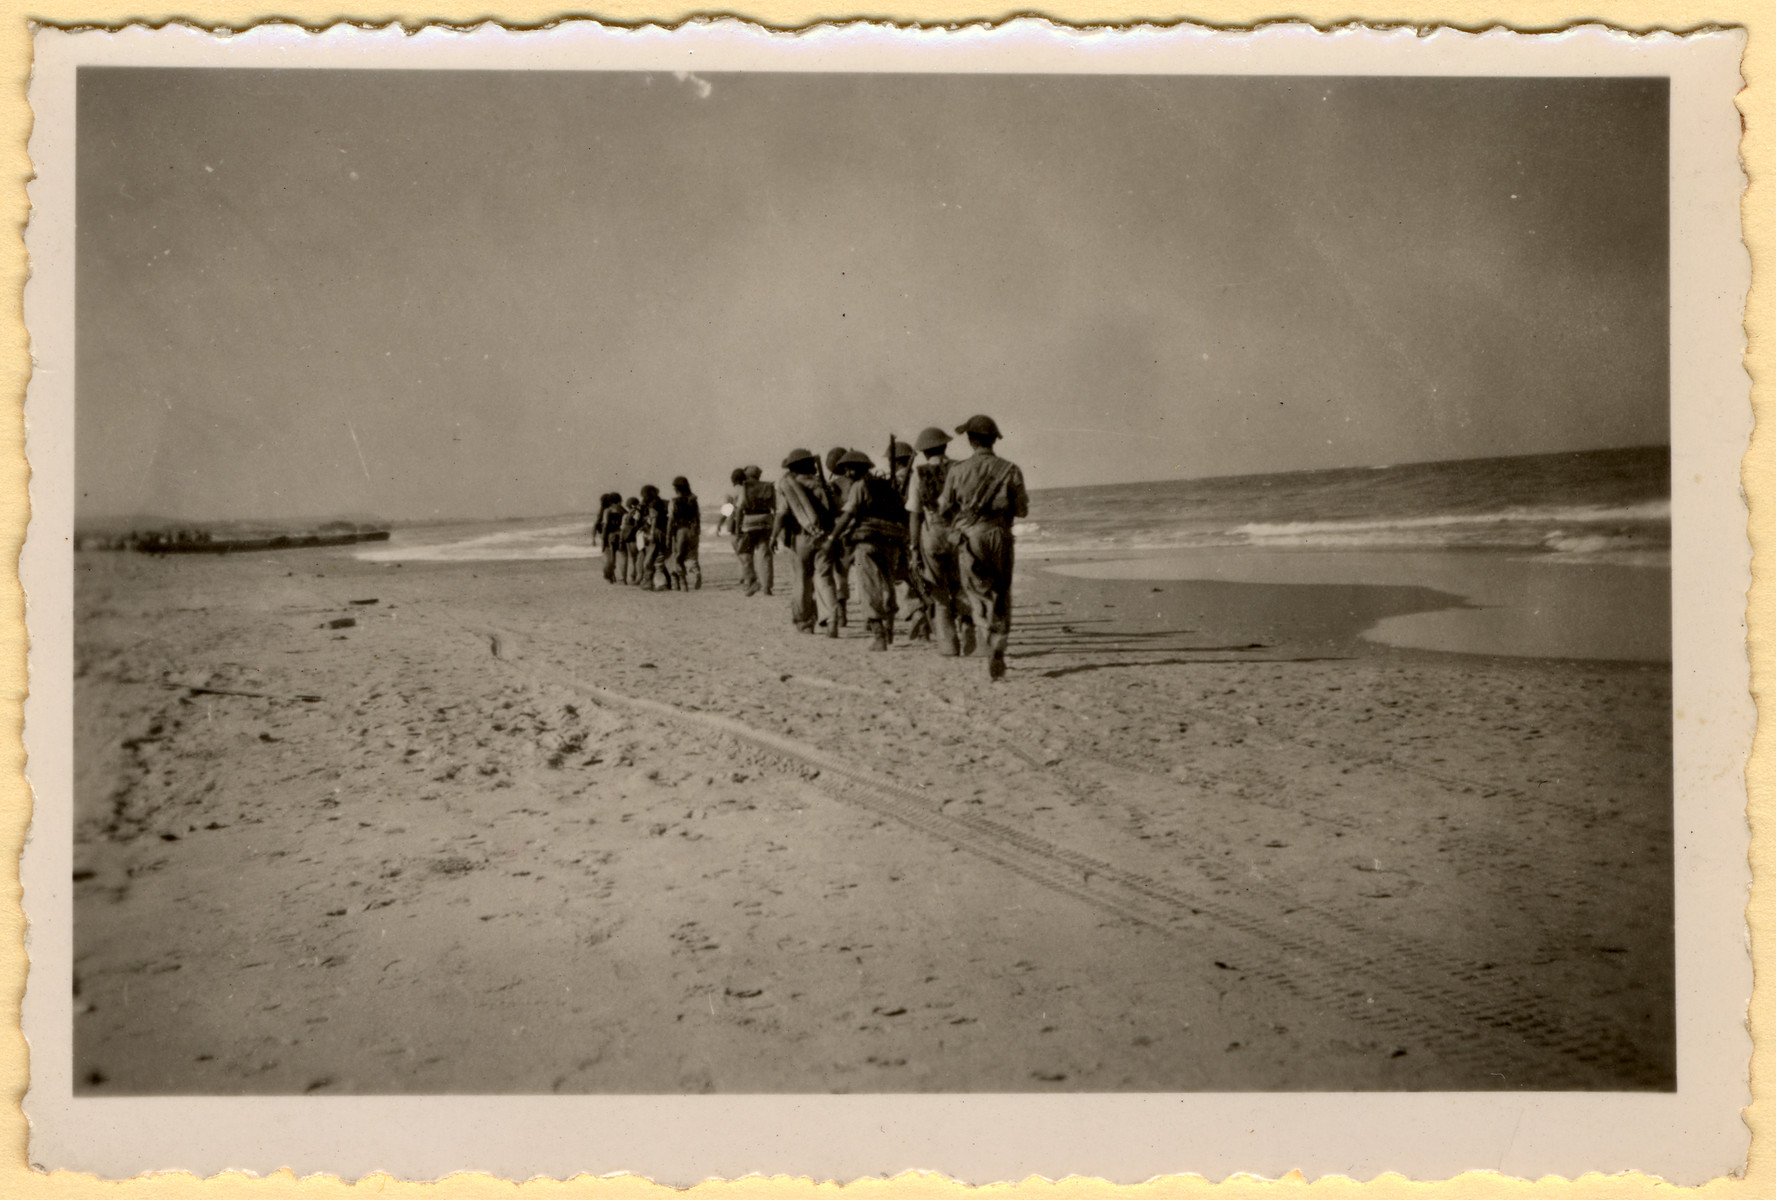 A column of Israeli soldiers marches down the beach during a demolition raid practice.